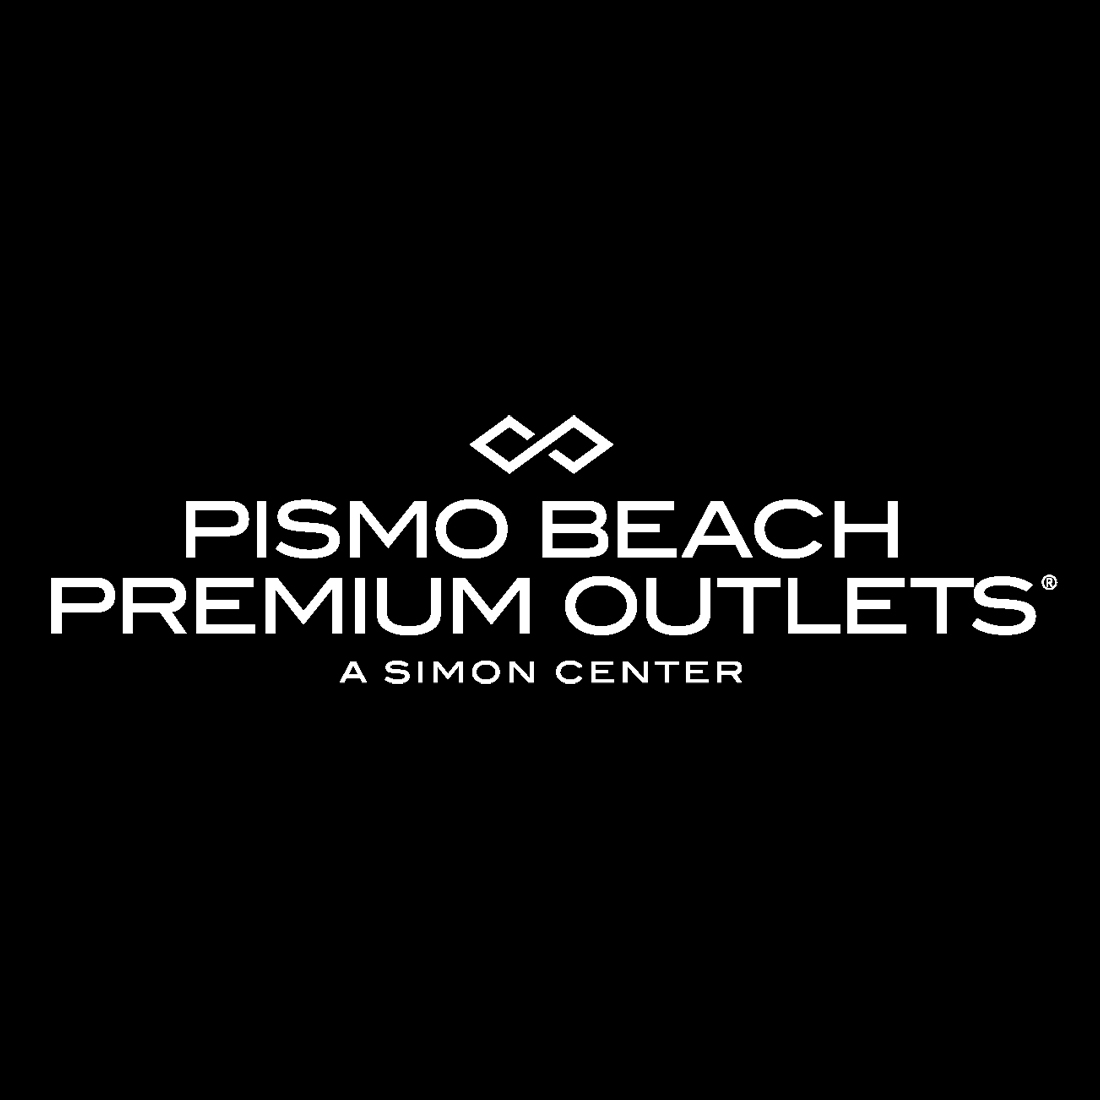 Pismo Beach Premium Outlets